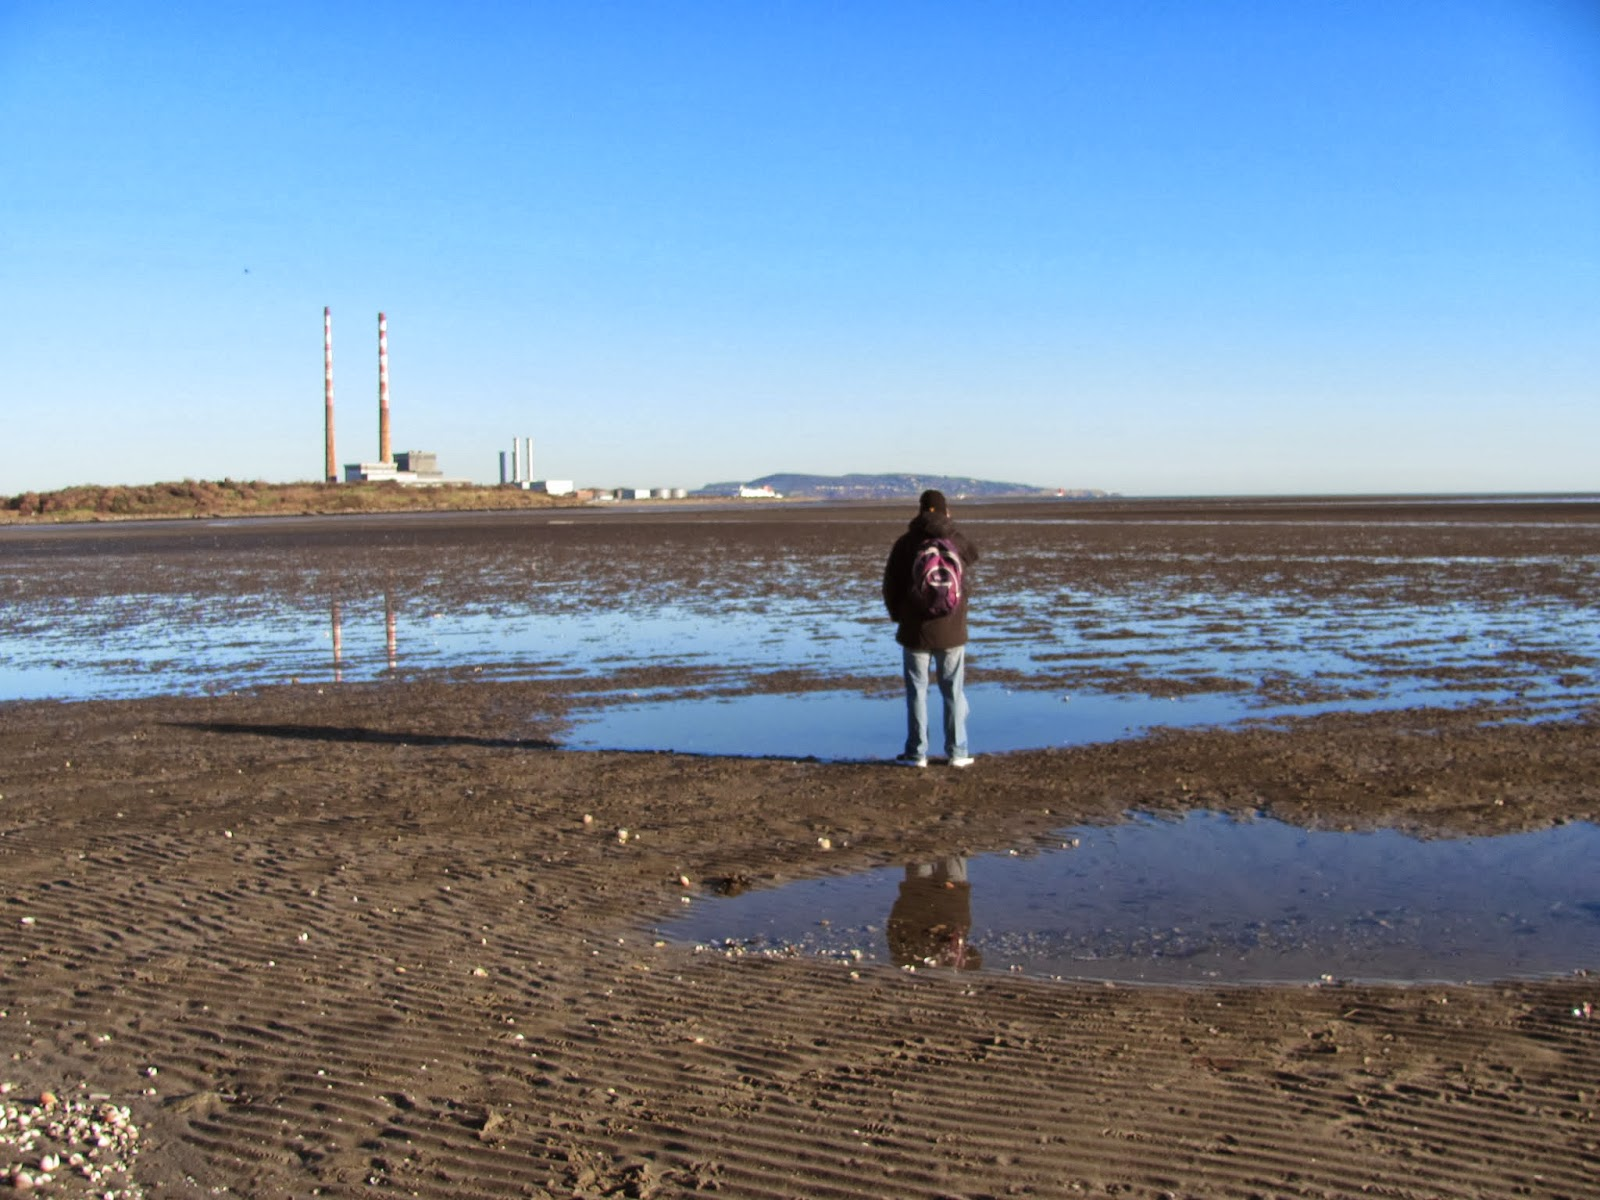 Cory on Sandymount Strand at low tide in Dublin, Ireland